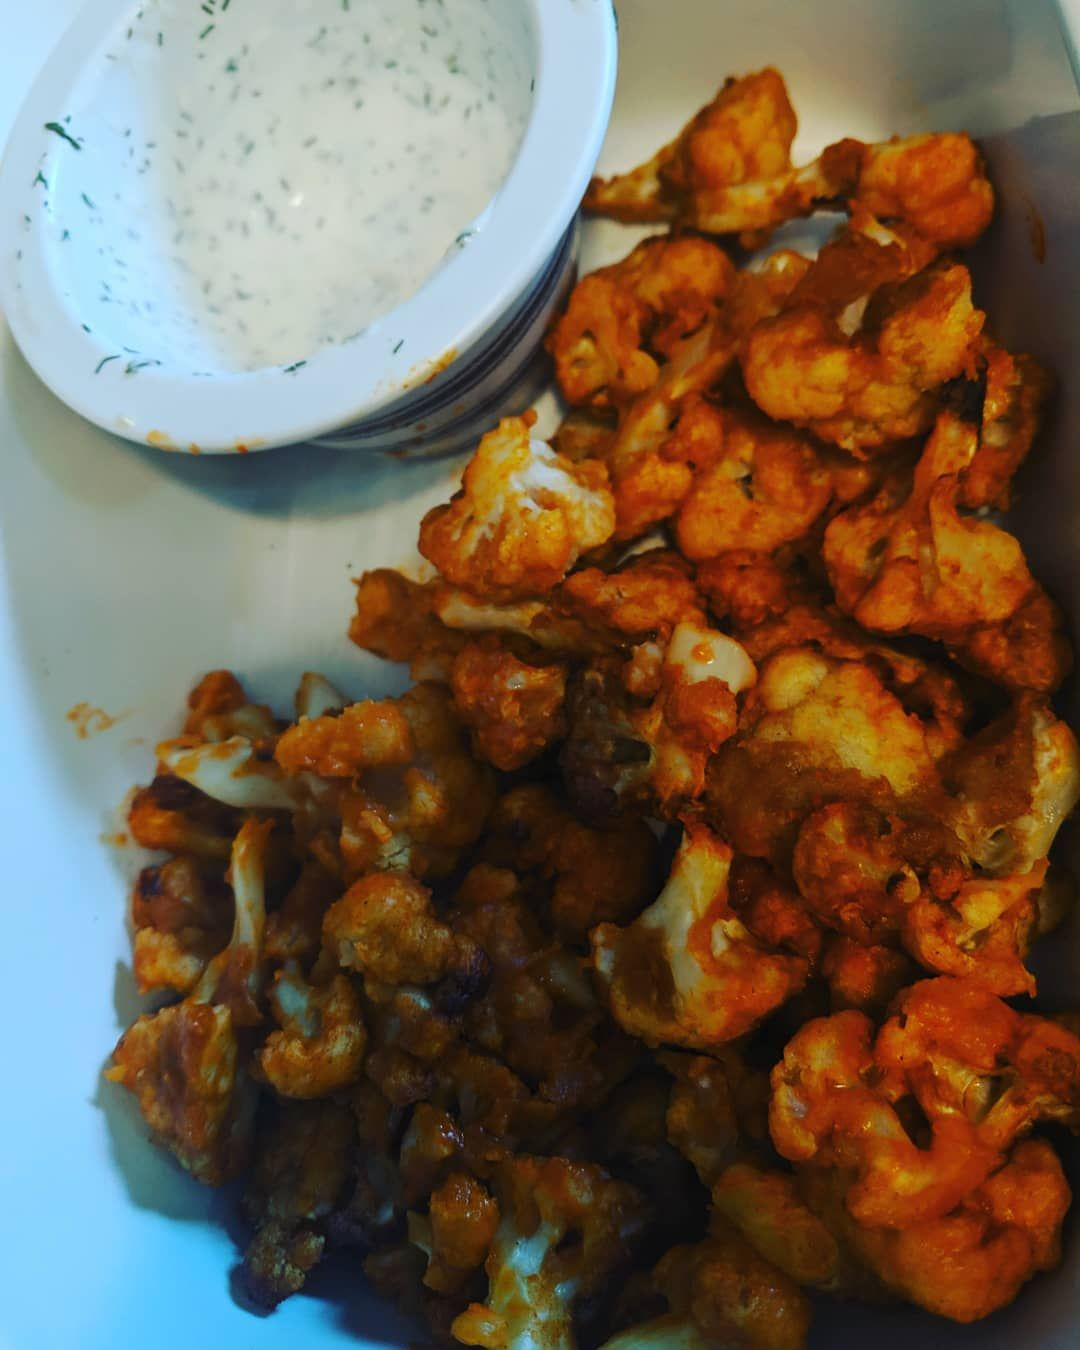 Air fried cauliflower wings with homemade ranch dipping sauce.  Easy and delicious appetizer for a BBQ today.